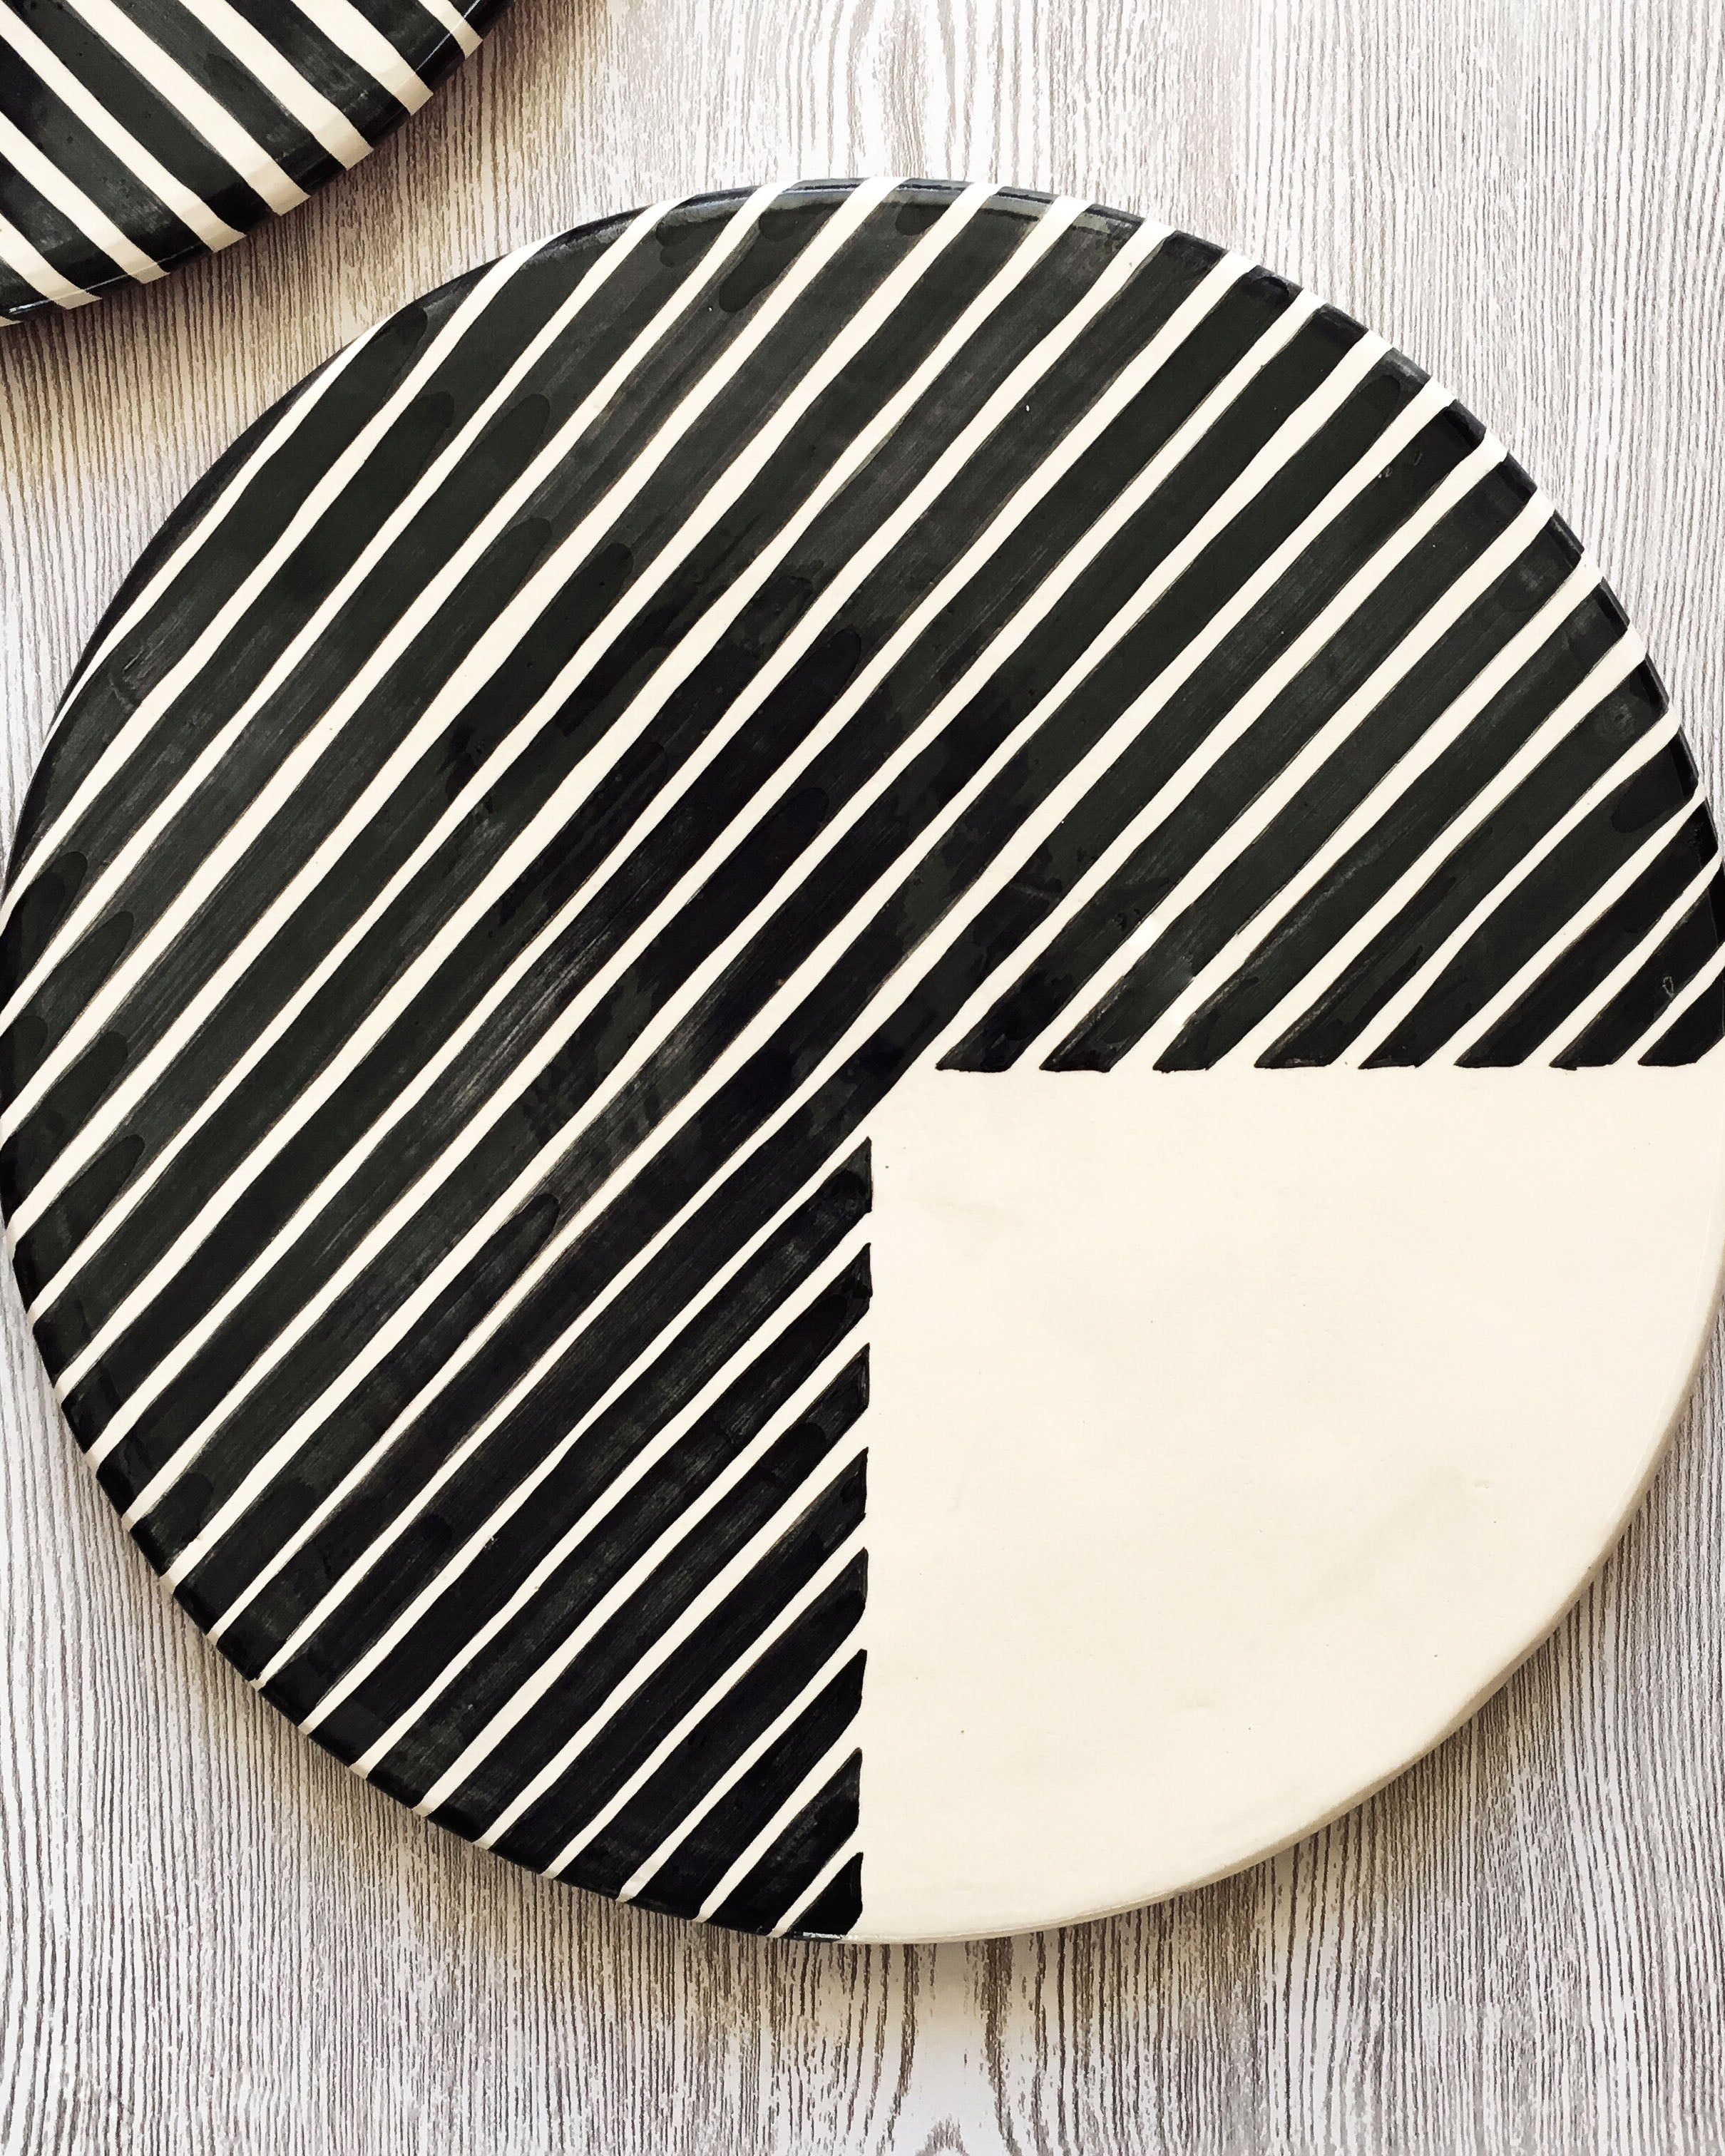 Handmade ceramic platter geometric pattern black and white B&W